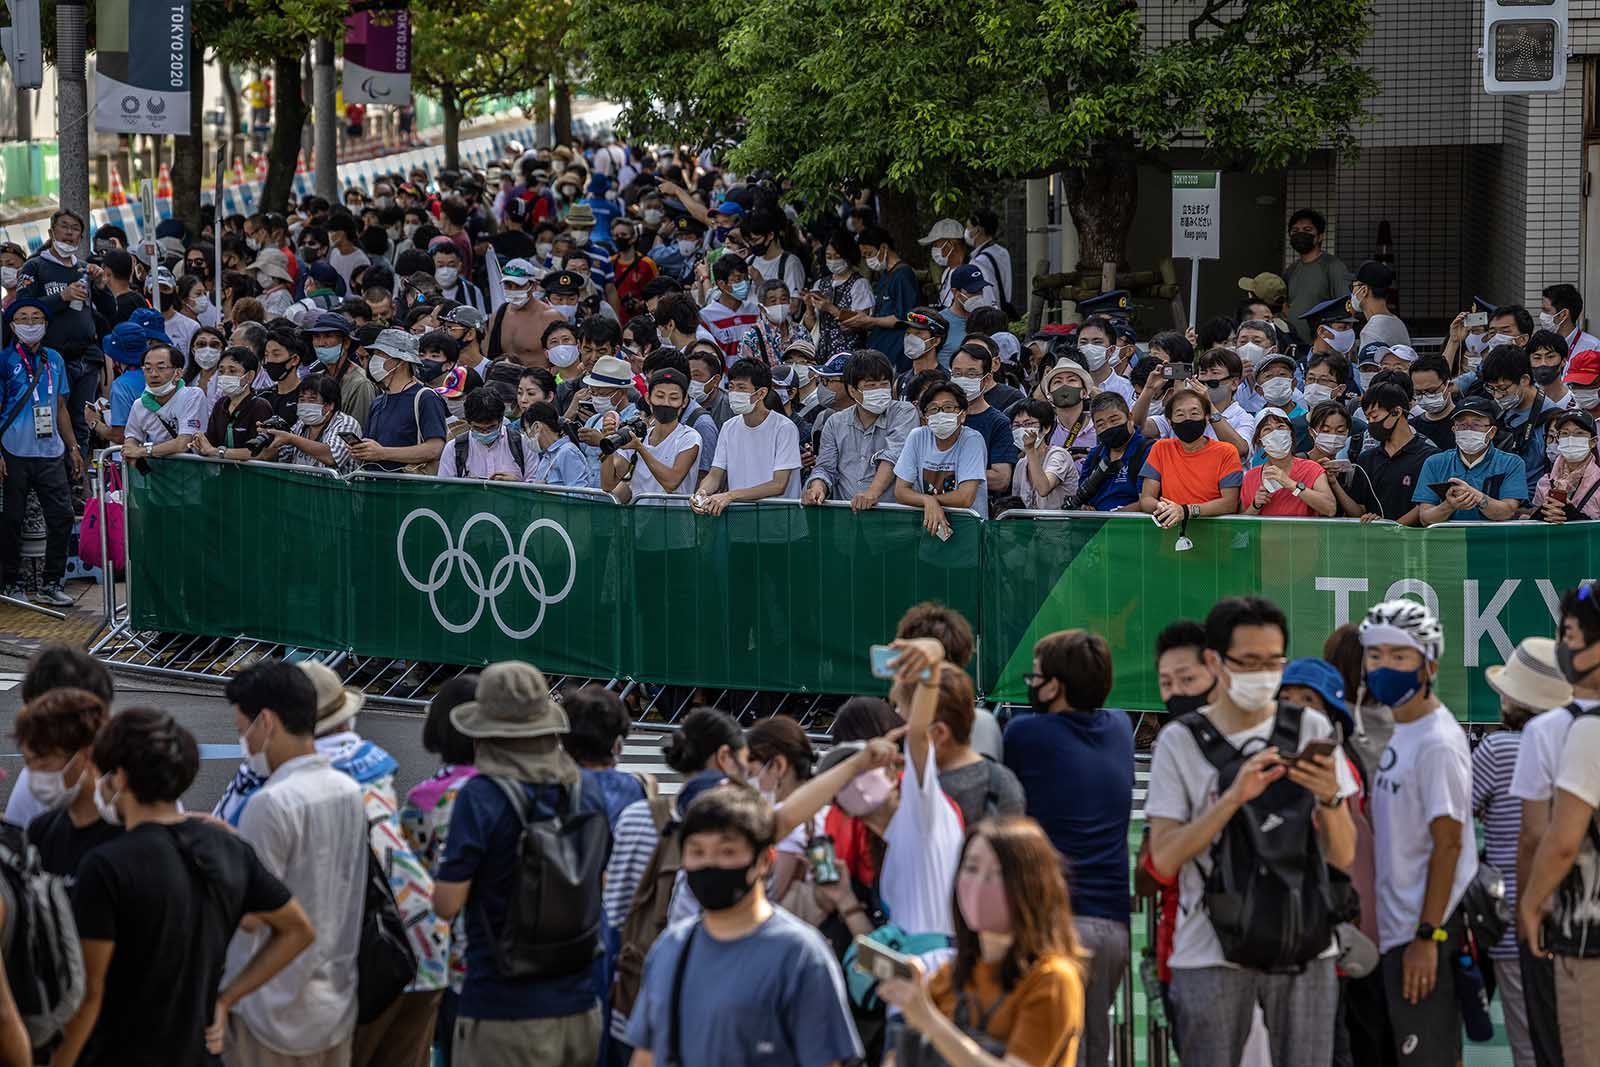 Spectators gather to watch the triathlon relay on Saturday, July 31, in Tokyo.